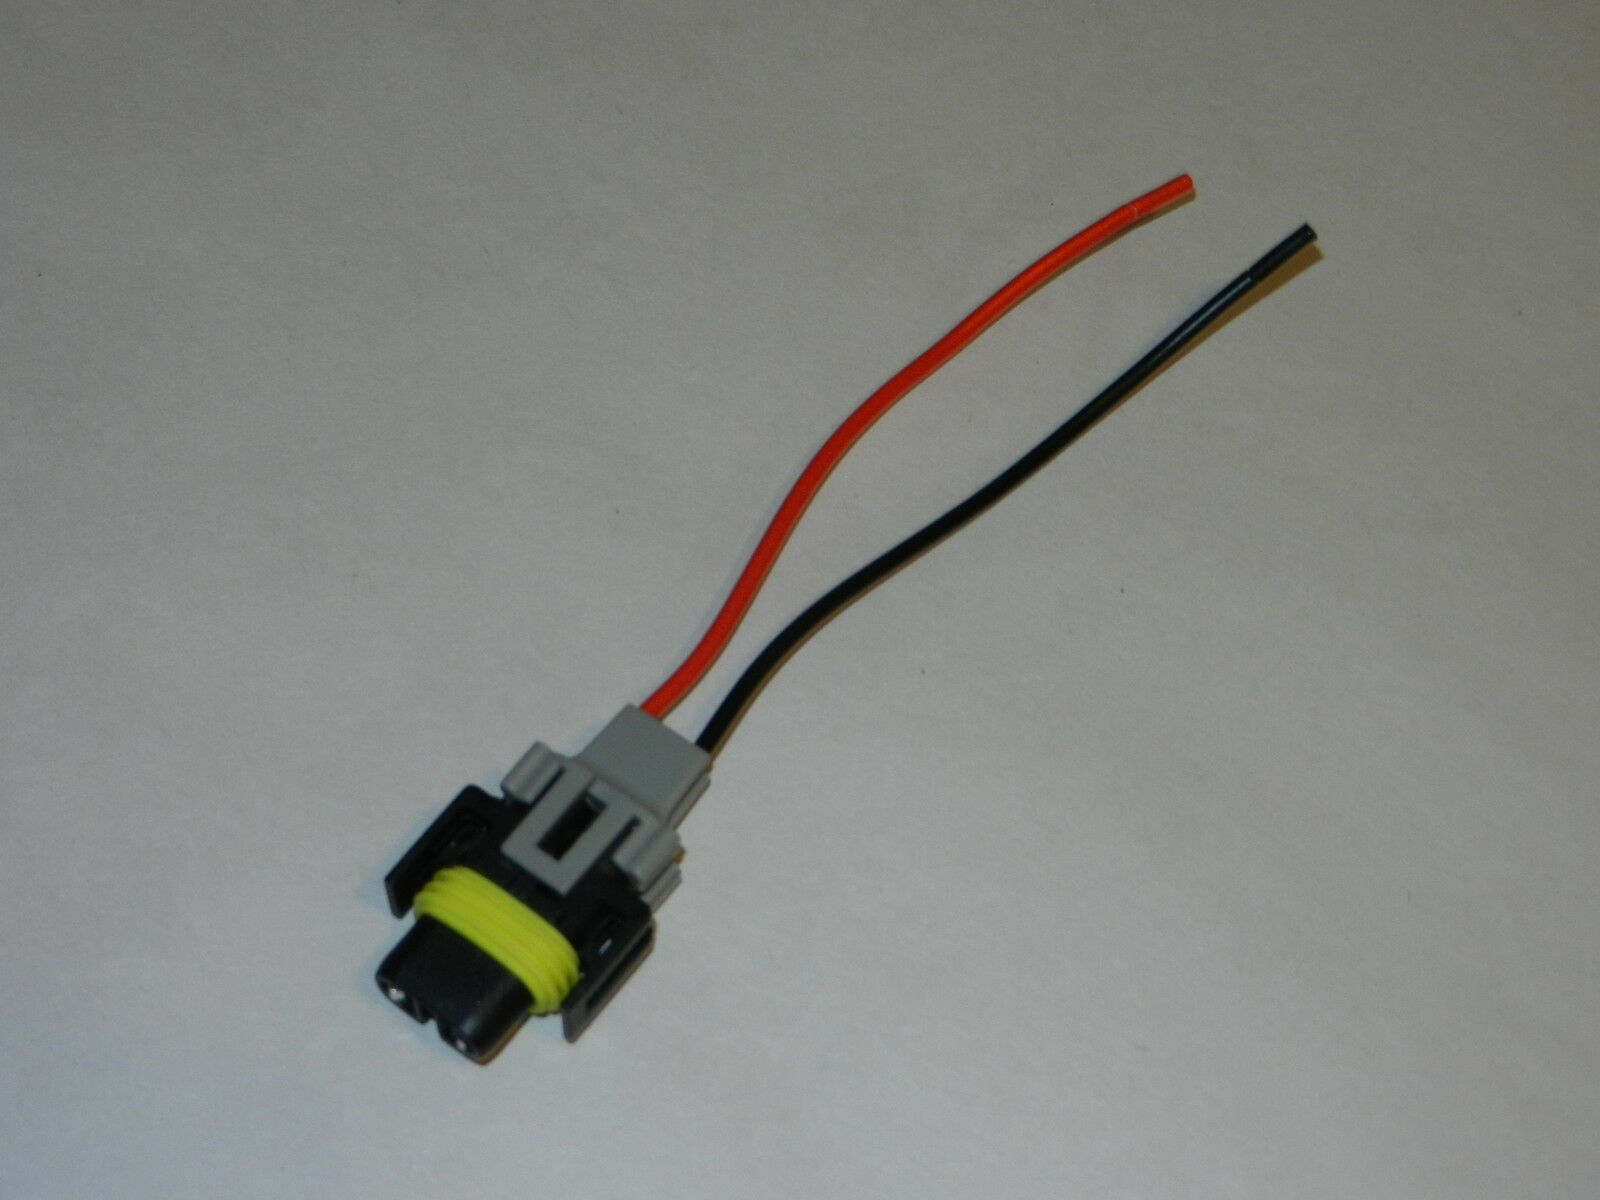 700r4 Wiring Plug Free Diagram For You Gm Accessory Relay Vss Vehicle Speed Sensor Connector Harness A Non Computer Transmission Electrical